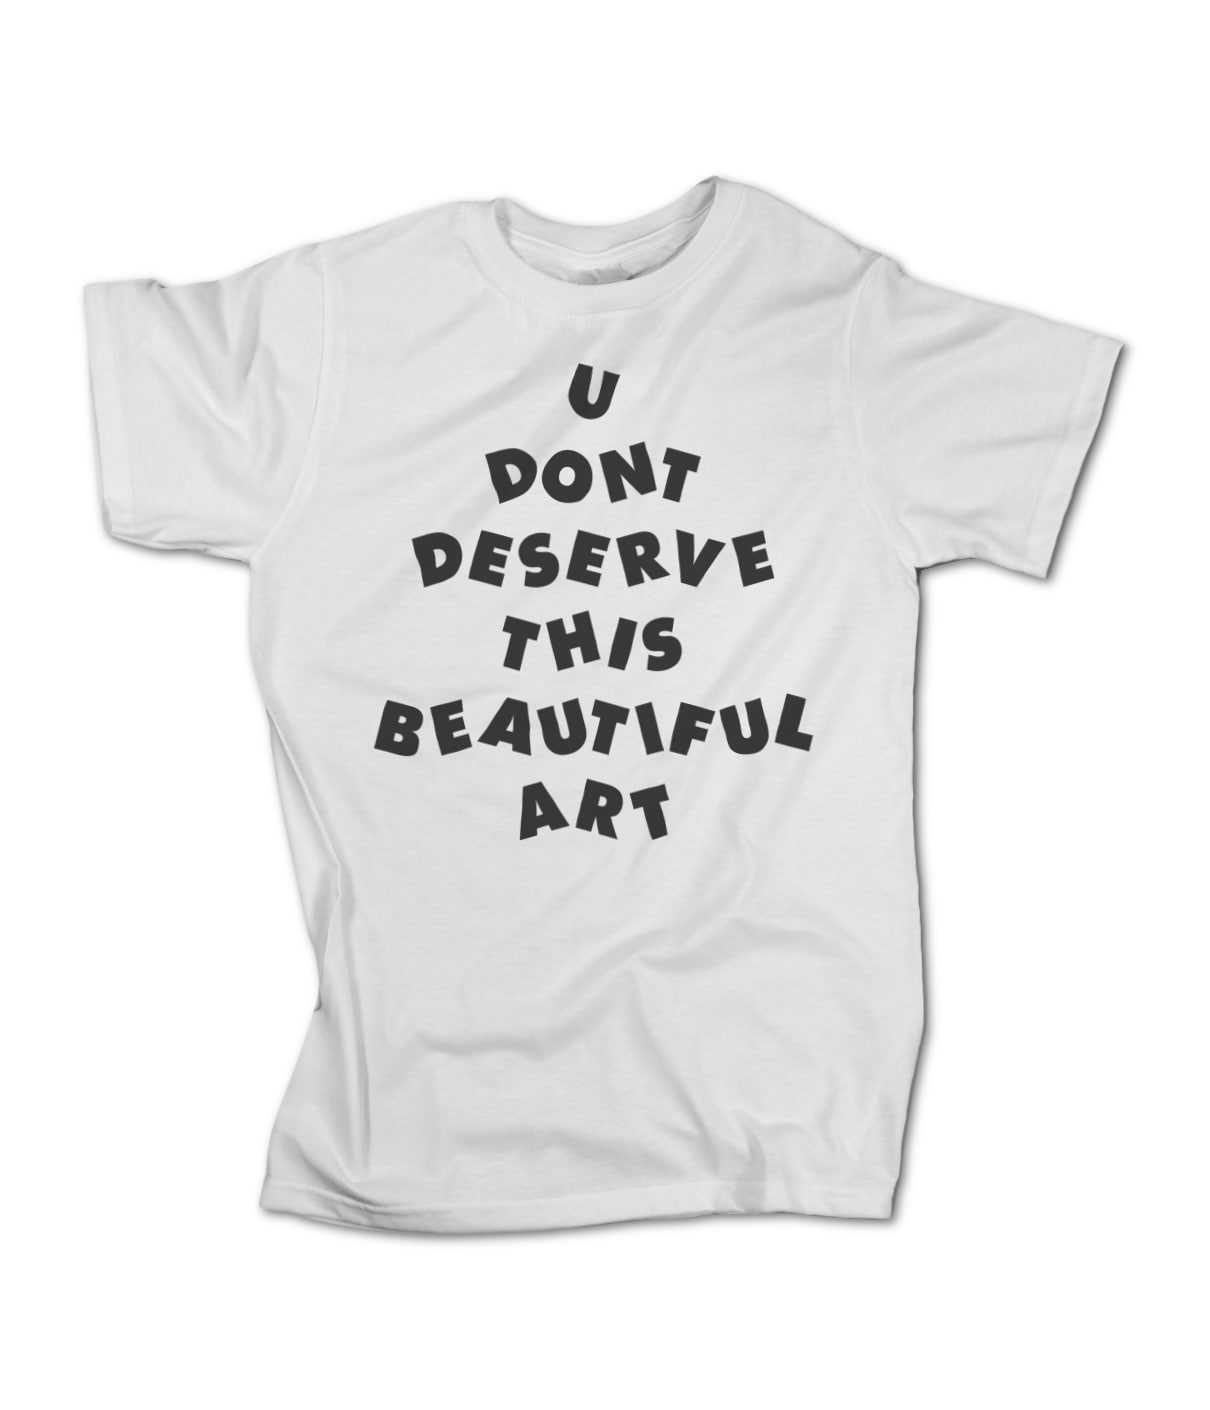 U don t deserve this beautiful art uddtba logo 1514688270